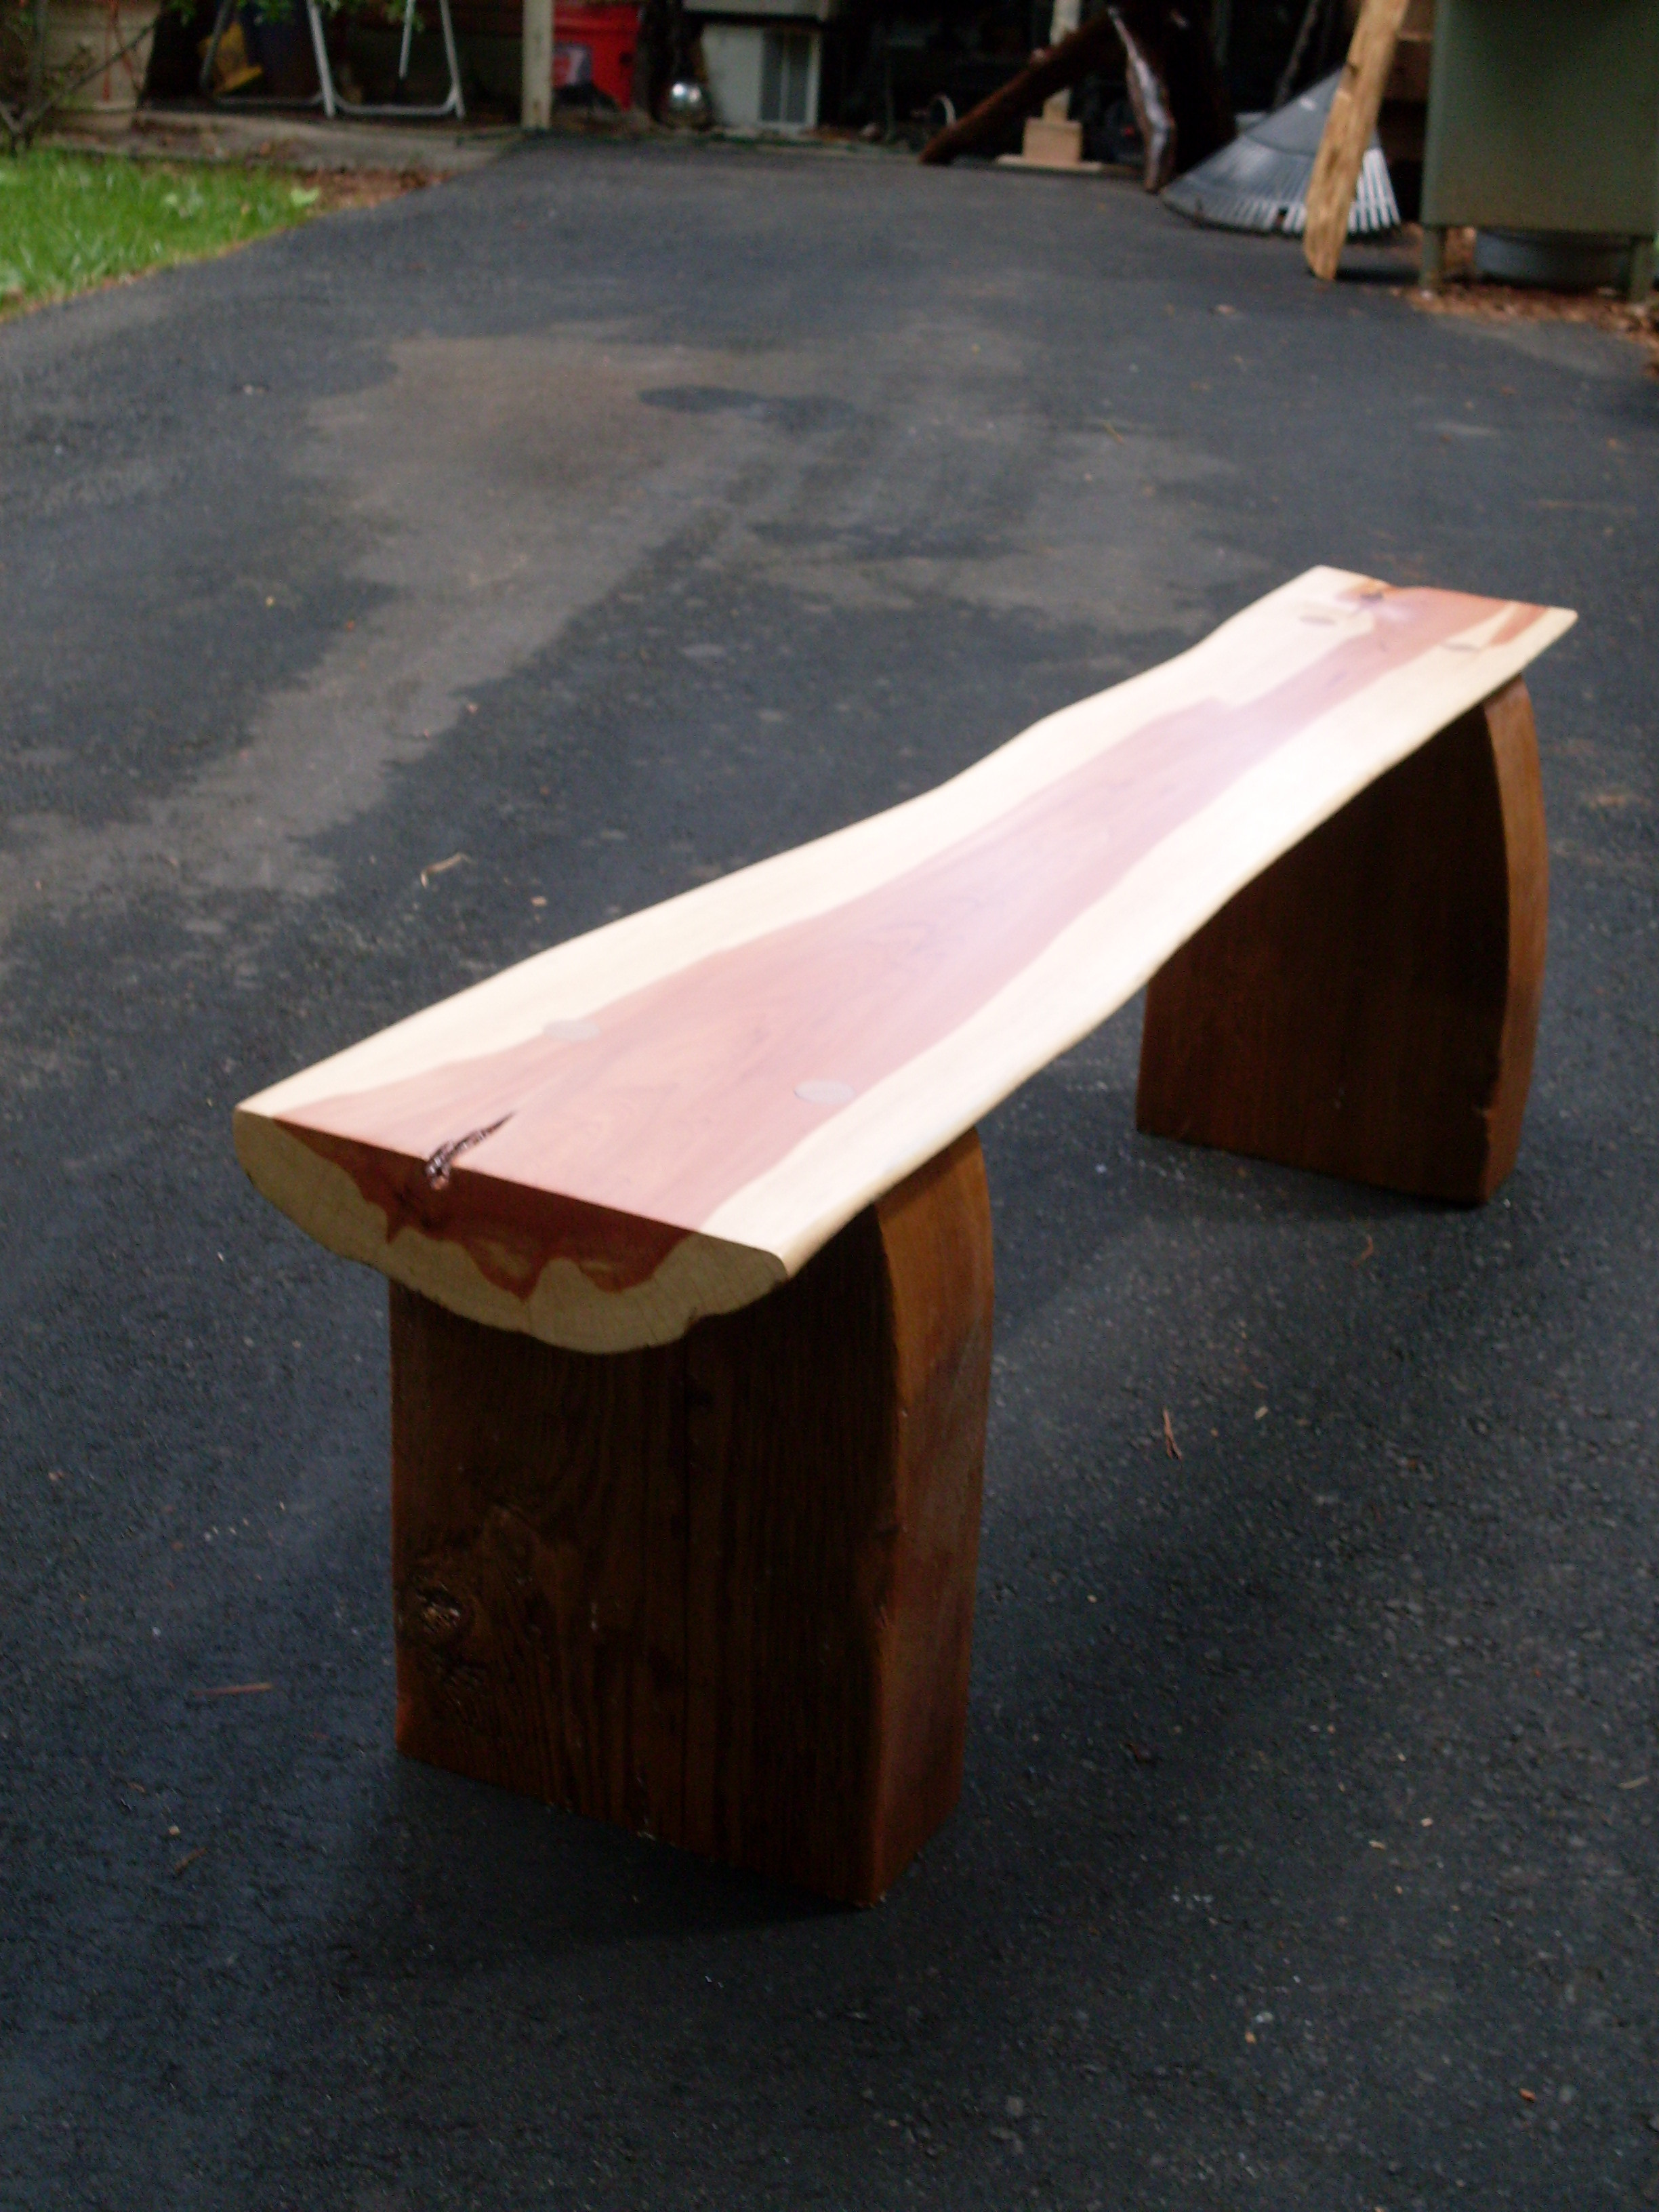 Best ideas about DIY Log Bench . Save or Pin DIY Log Bench Plans Download woodworking small projects Now.